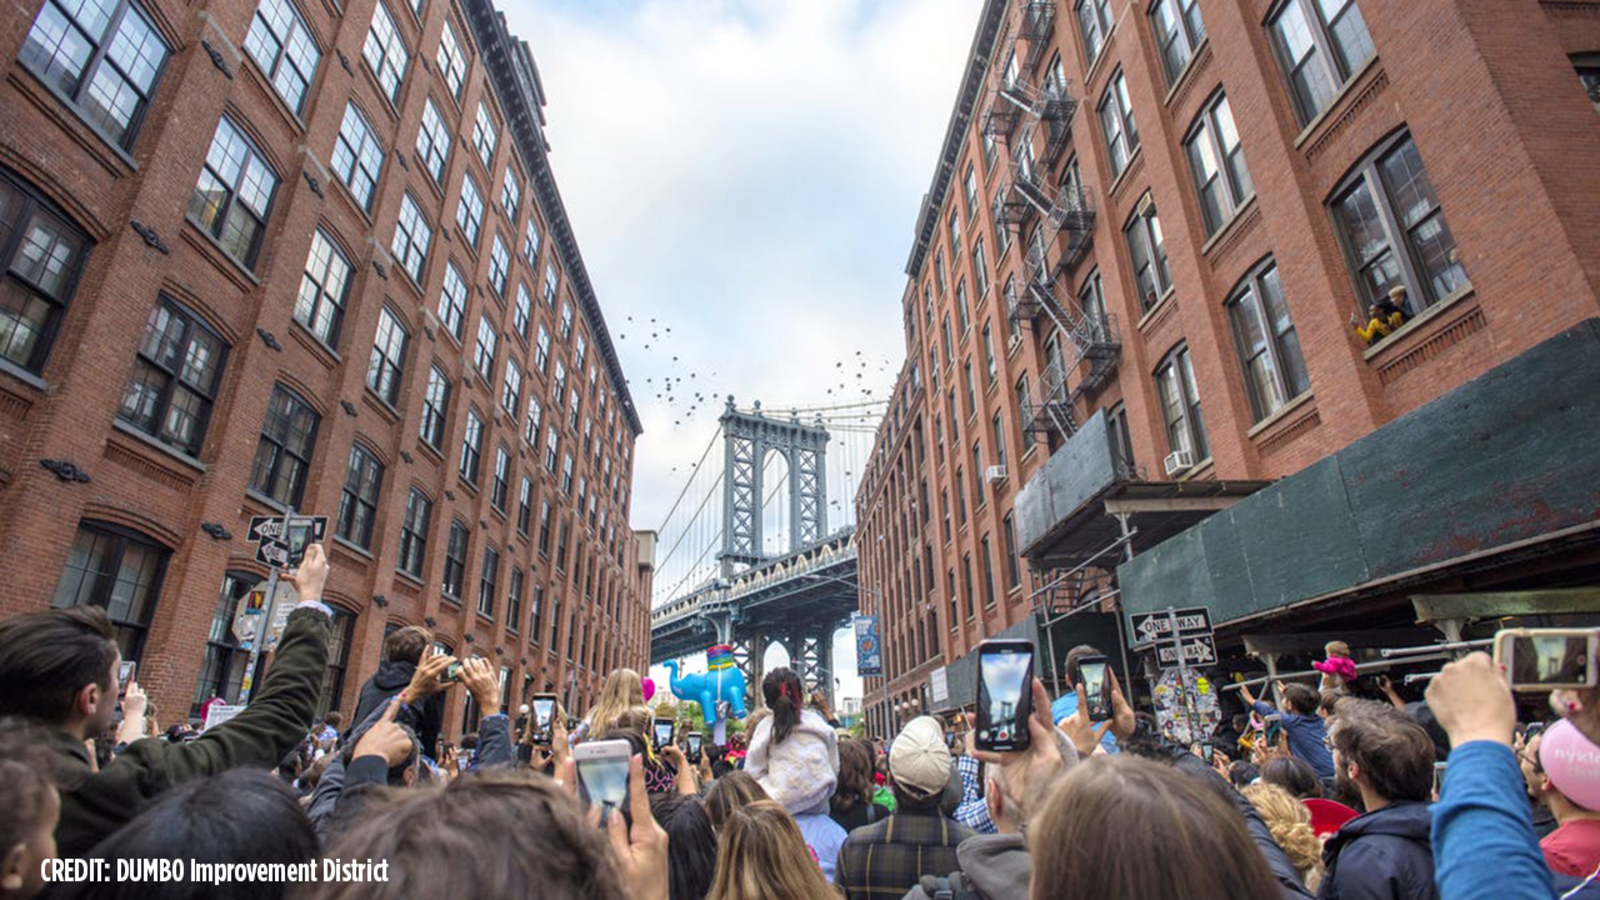 Thousands of elephants to 'fly' in DUMBO, Brooklyn next week